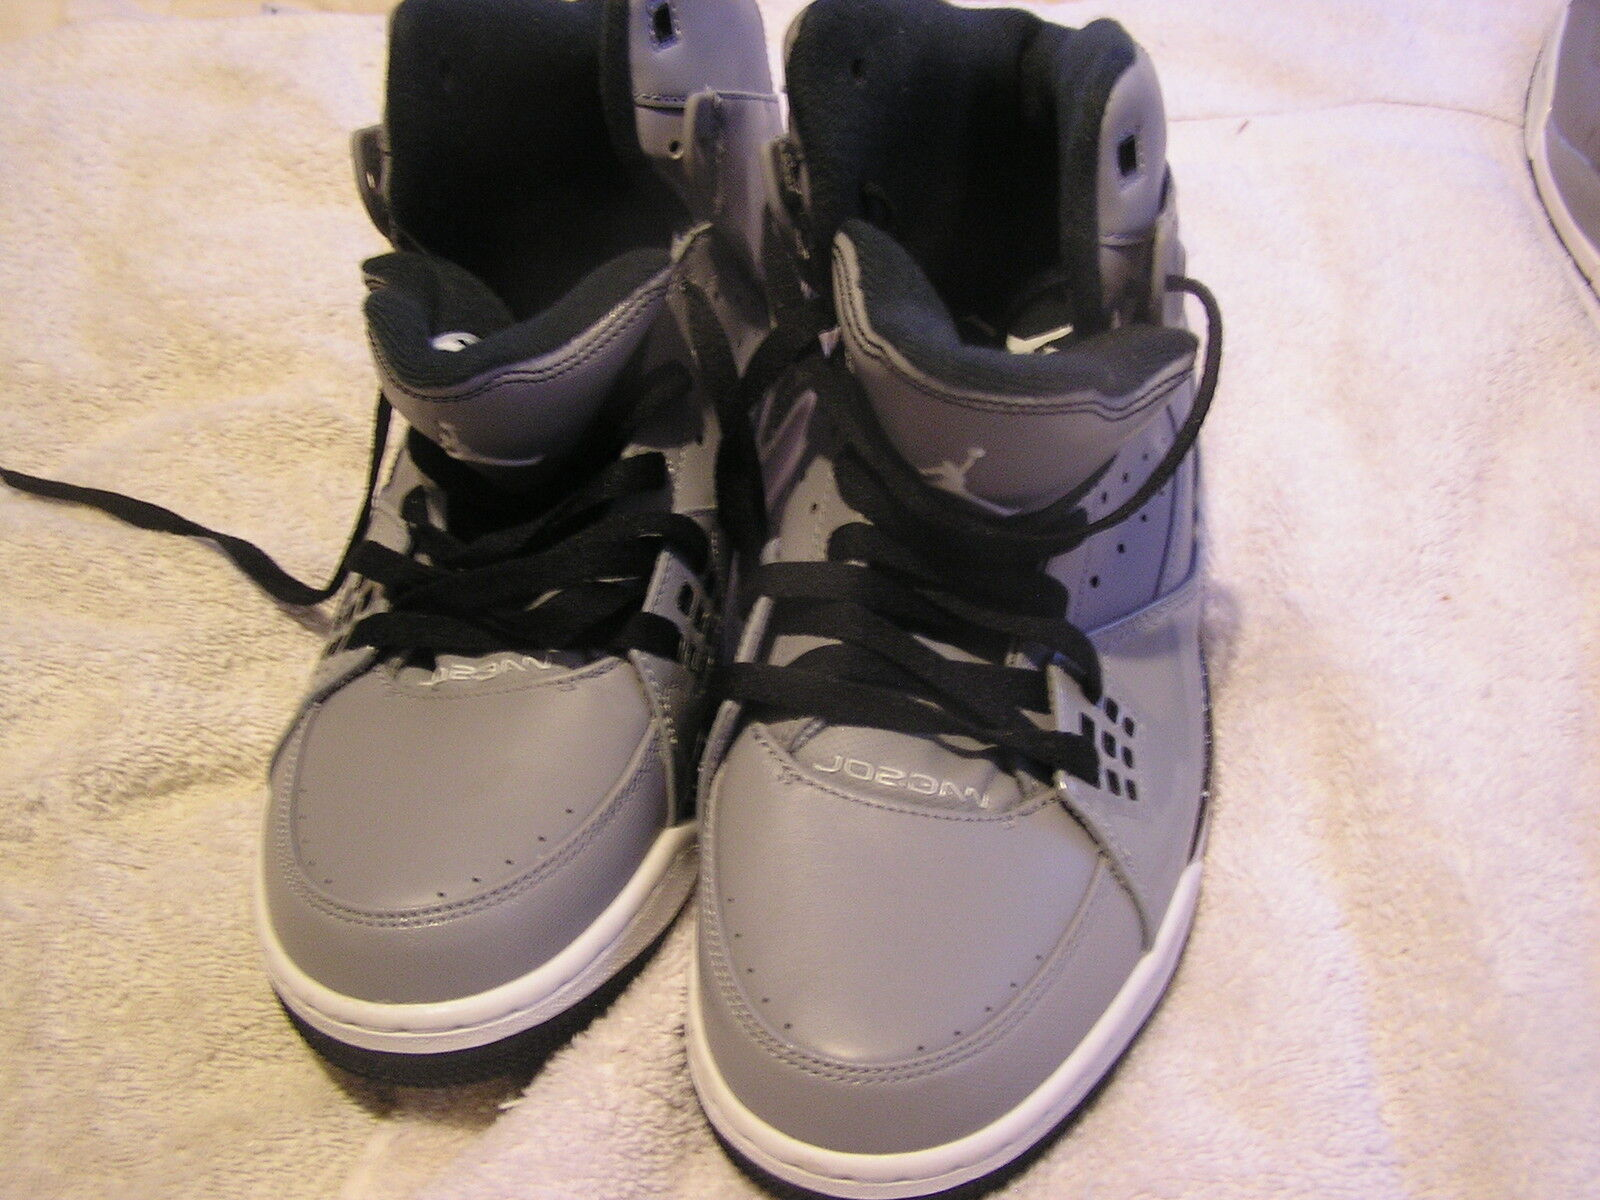 Nike Air Jordon Shoes  Size 12  2012